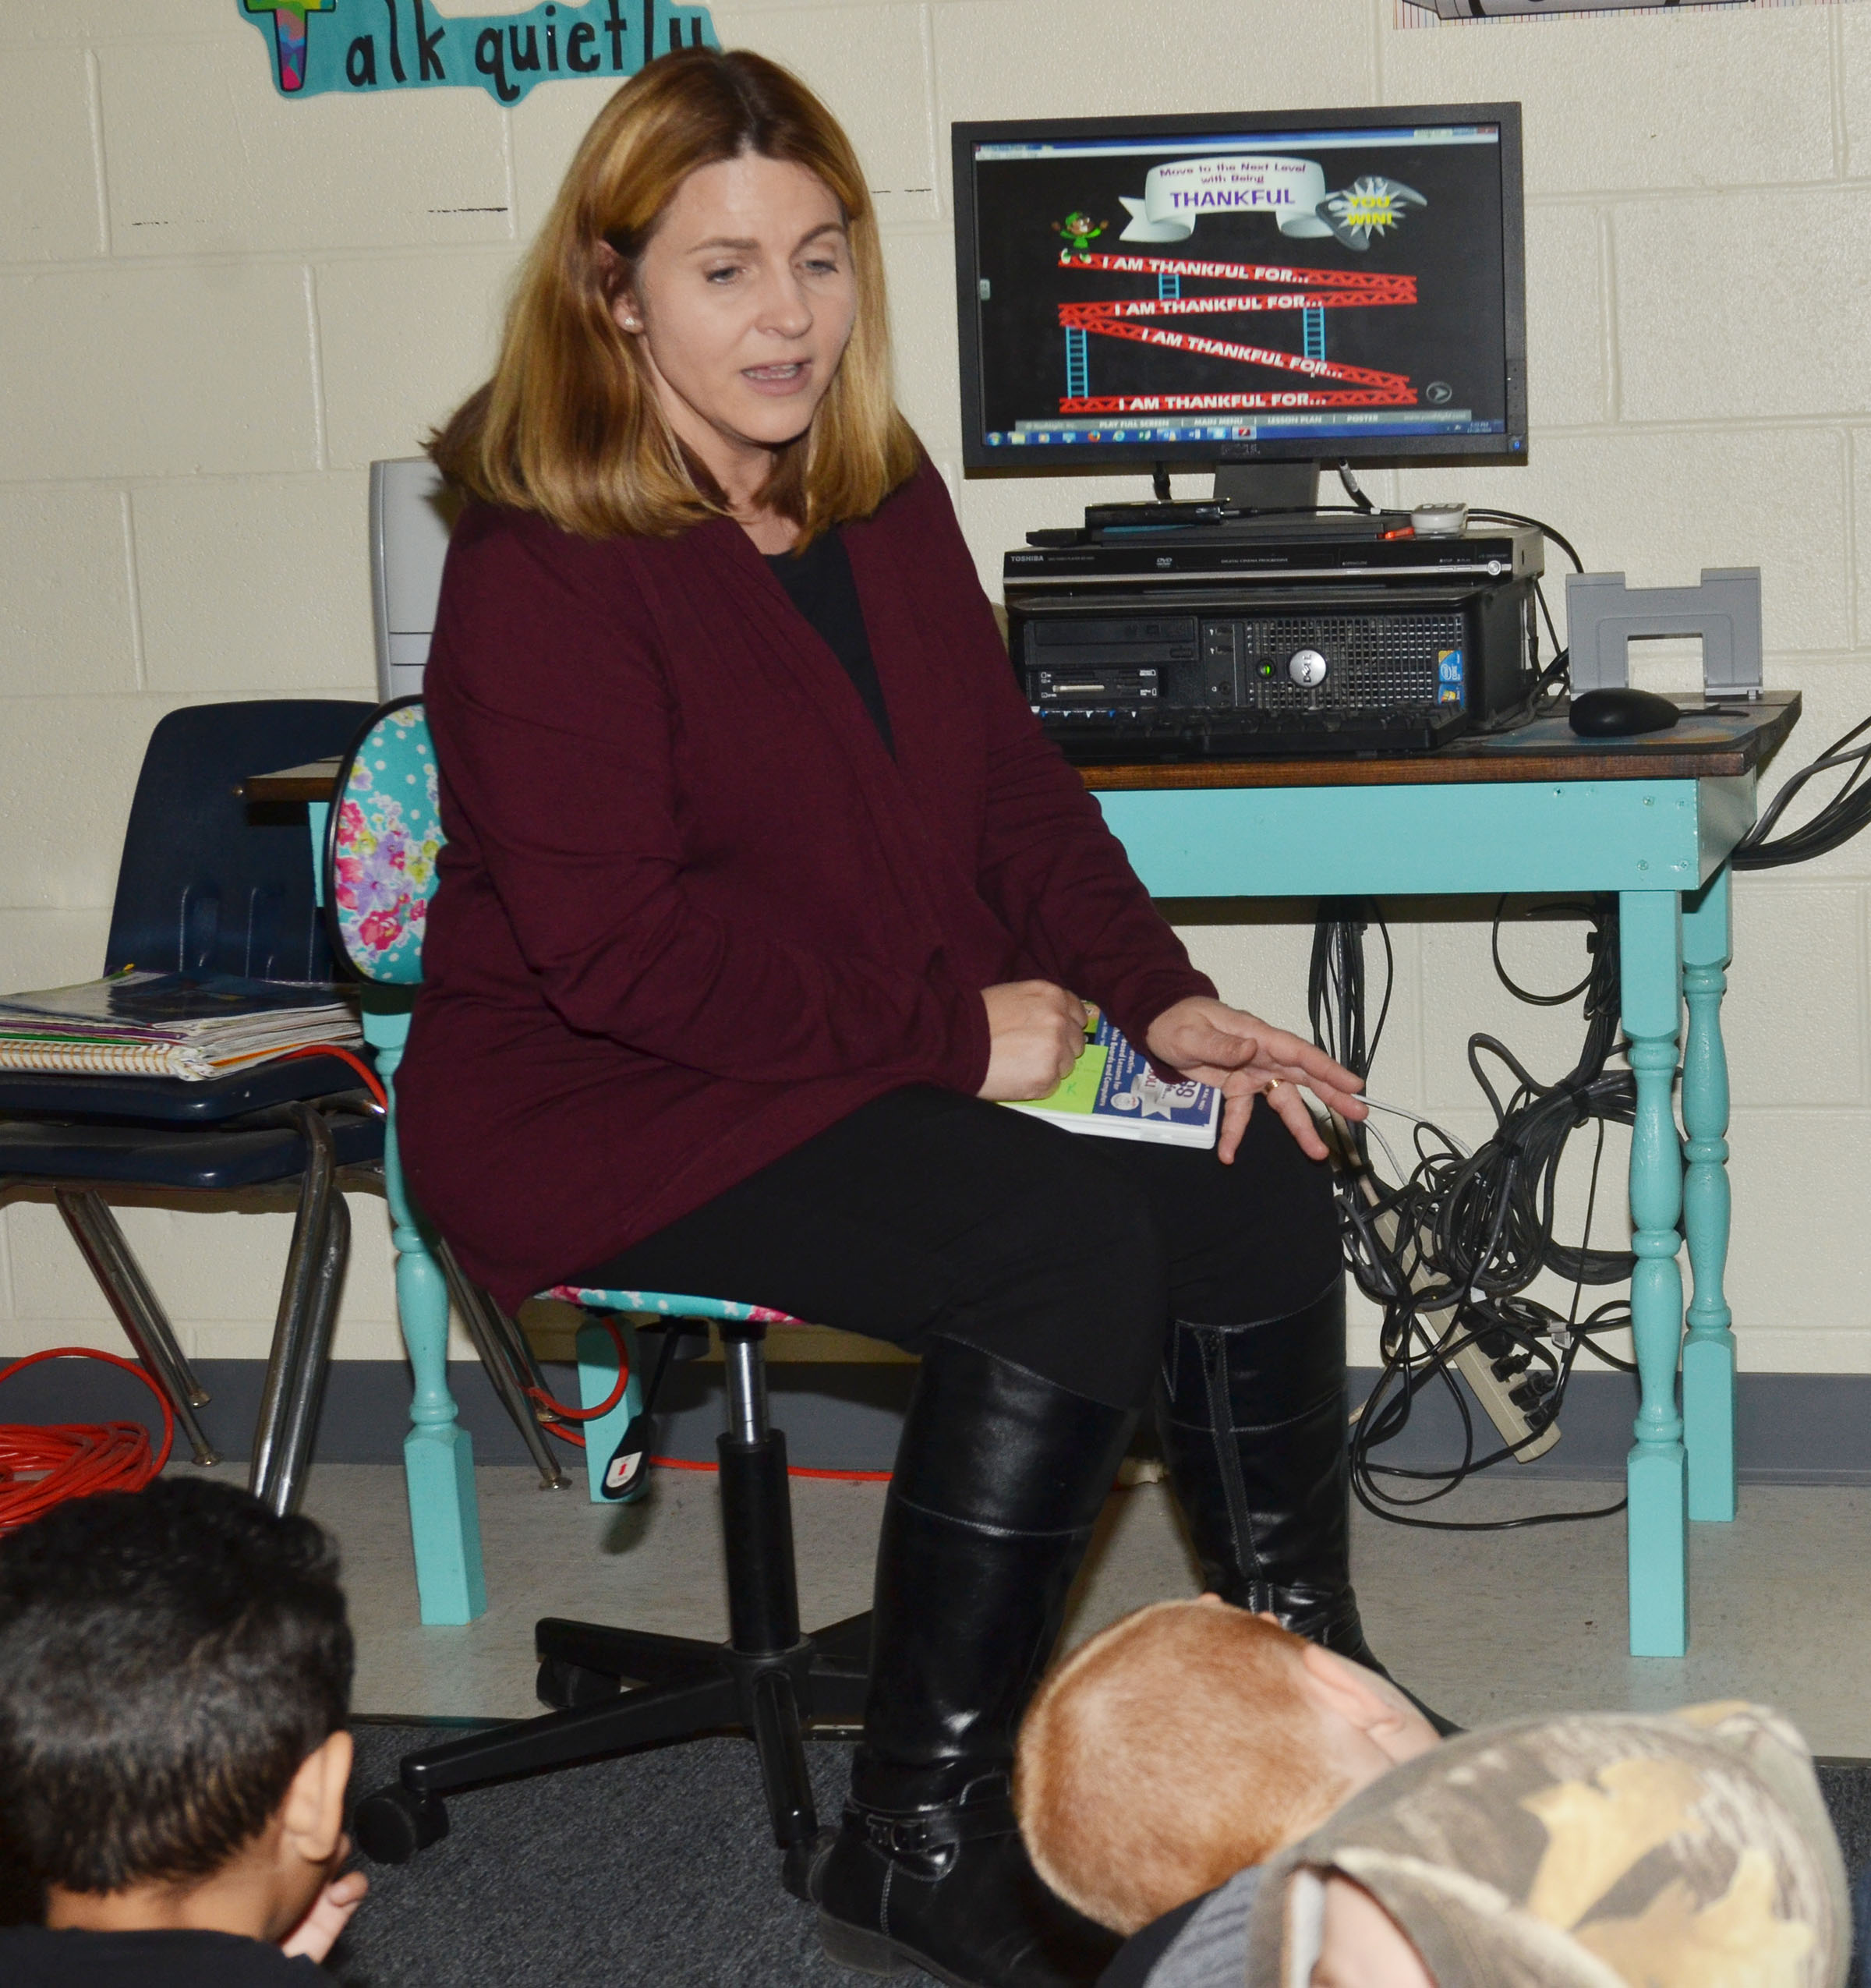 CES Guidance Counselor Sonya Orberson recently spoke to students about what students are thankful for in their lives, and ways to show that thankfulness.